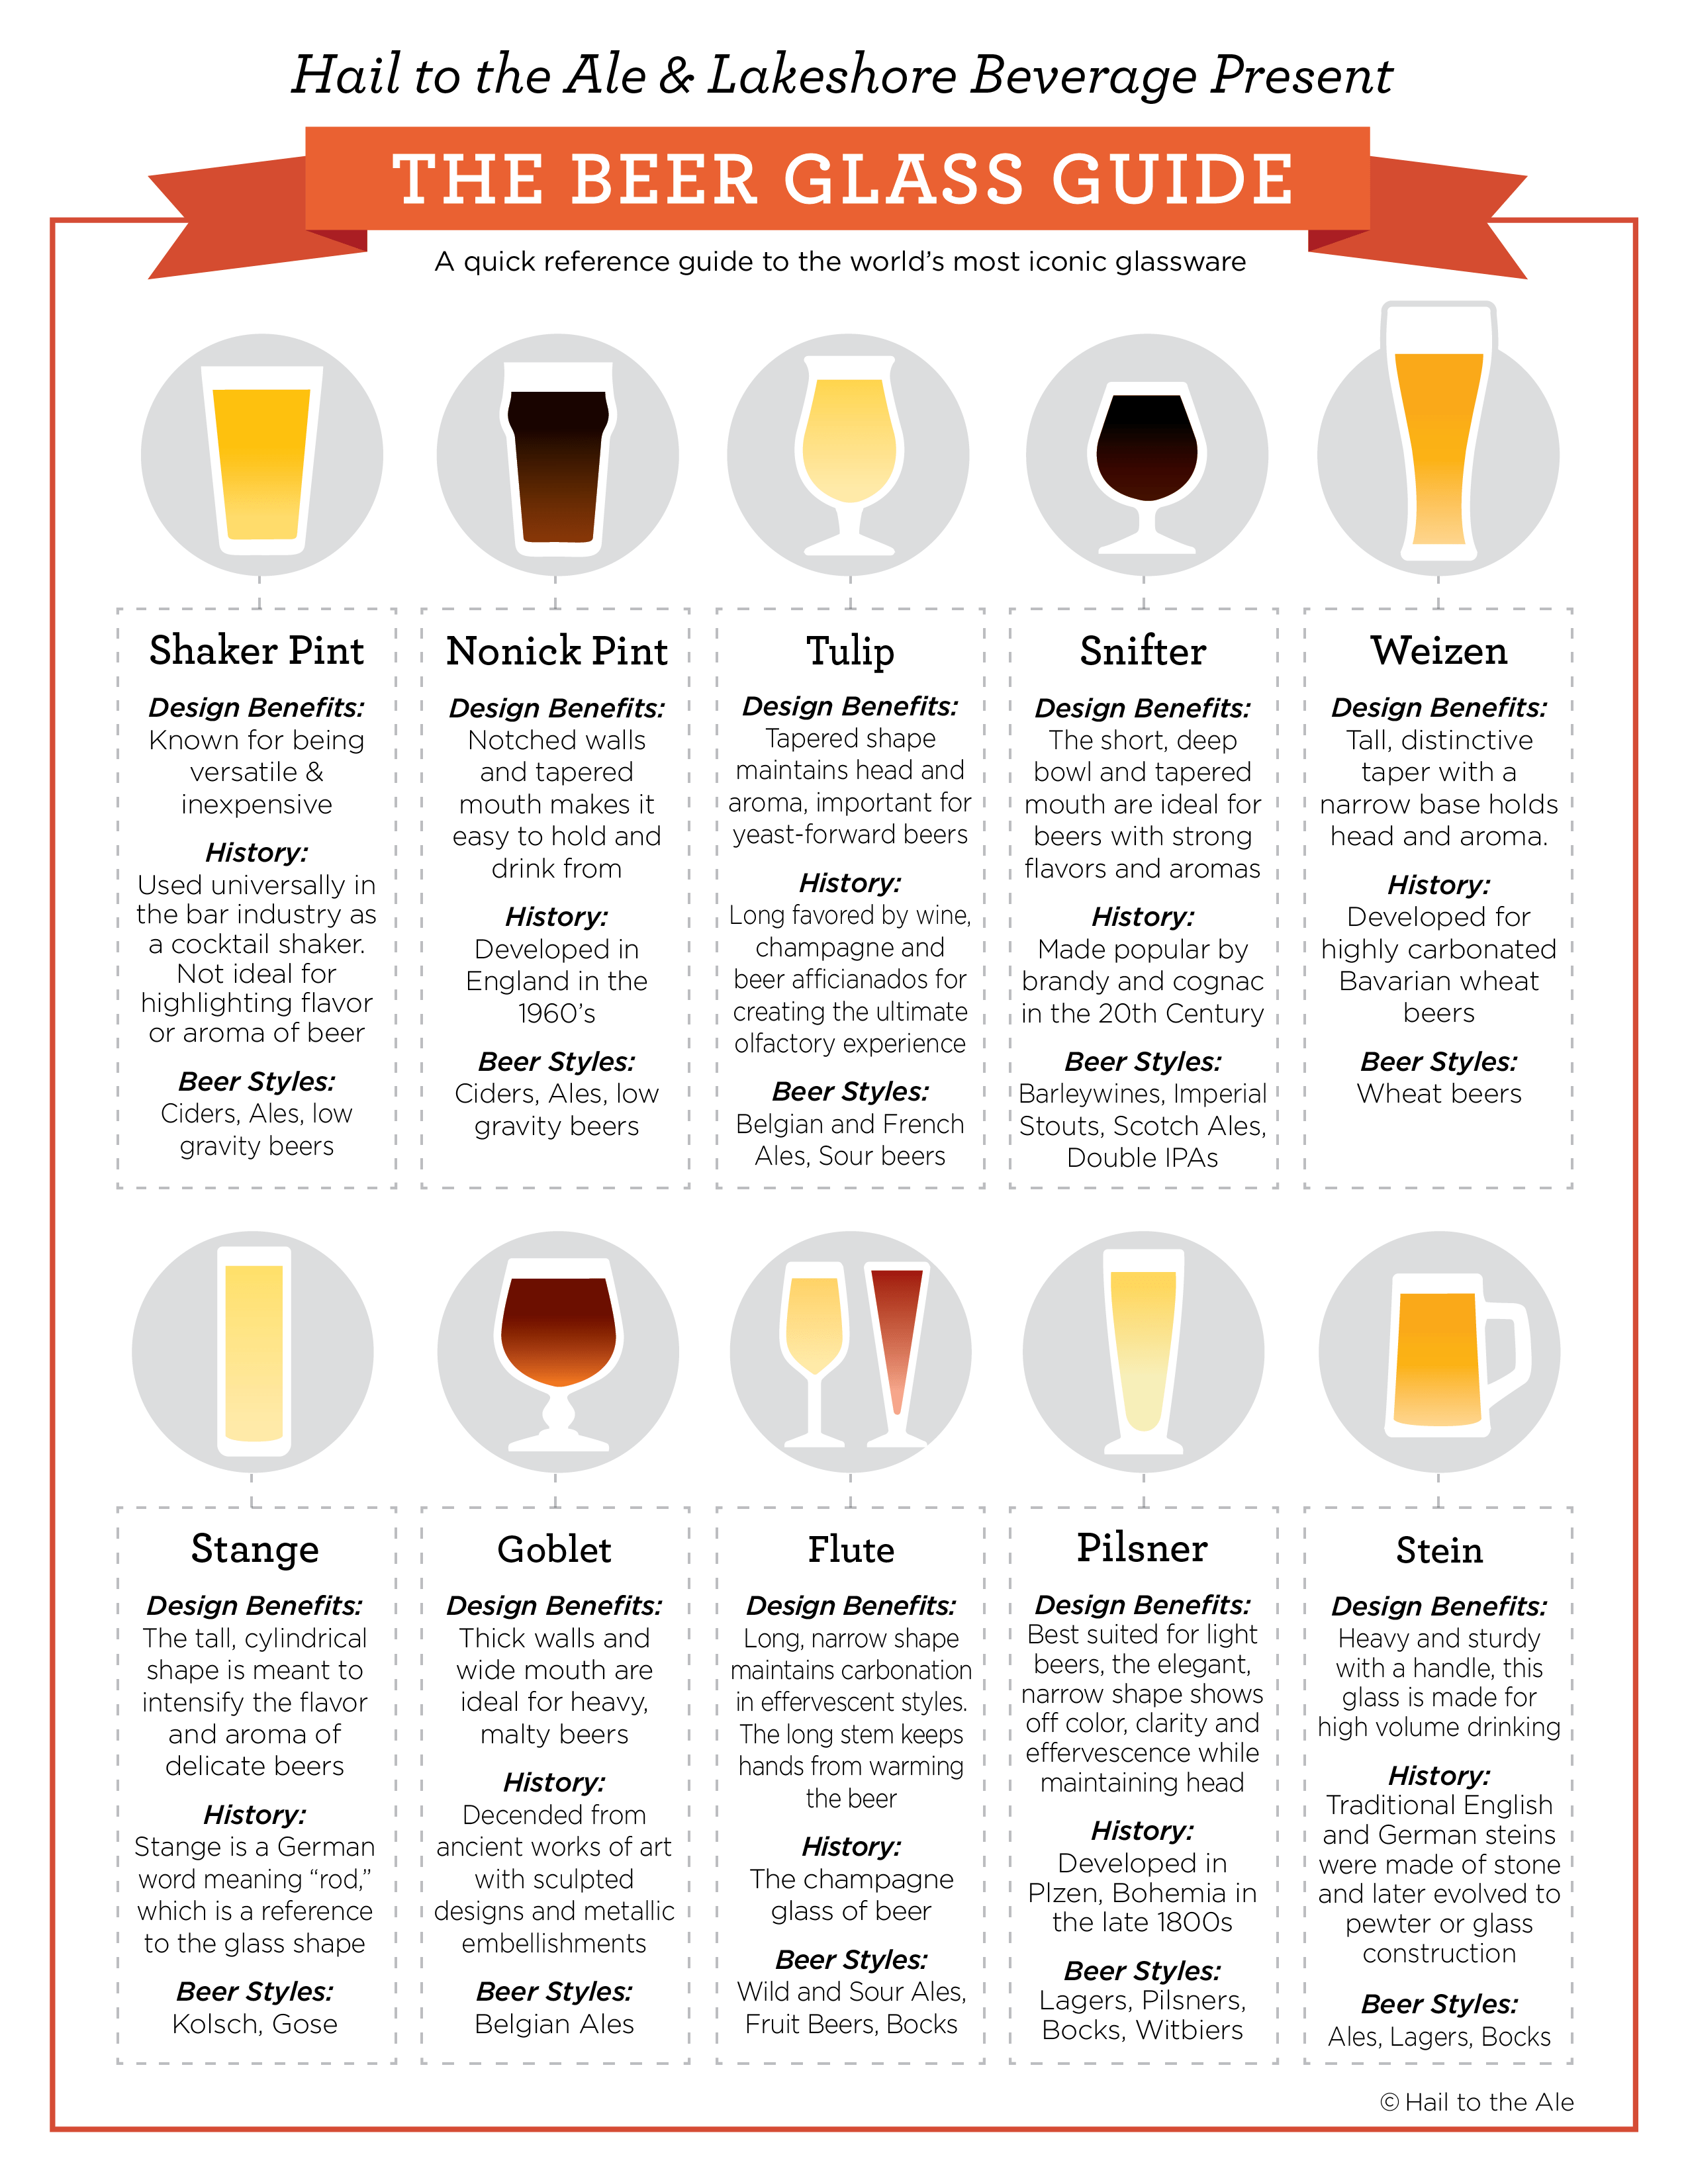 The Beer Glass Guide